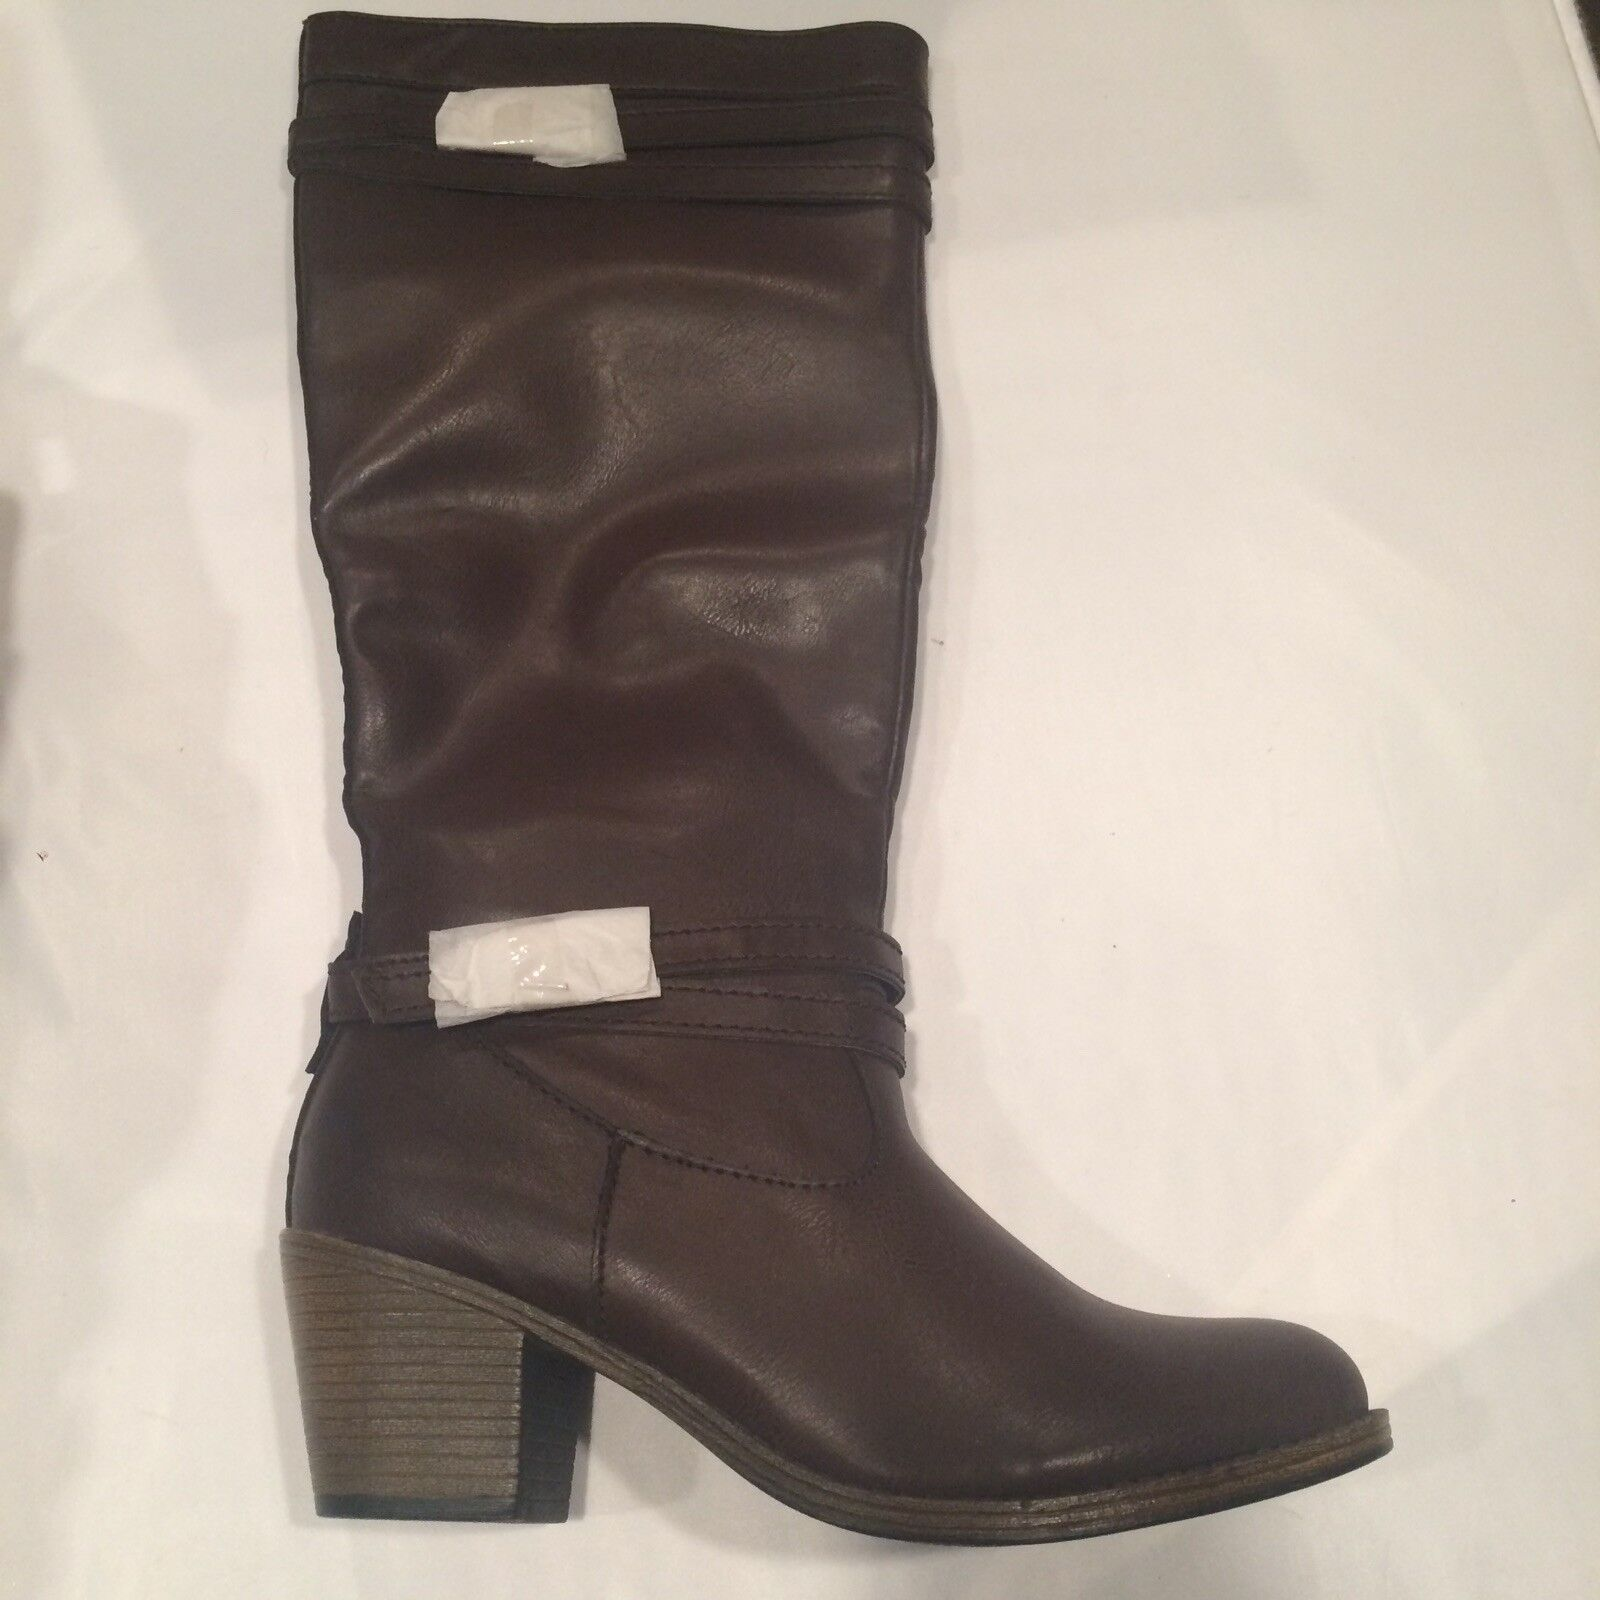 Sonoma Chocolate Brown Size 10 Women's Leather Riding Boots New